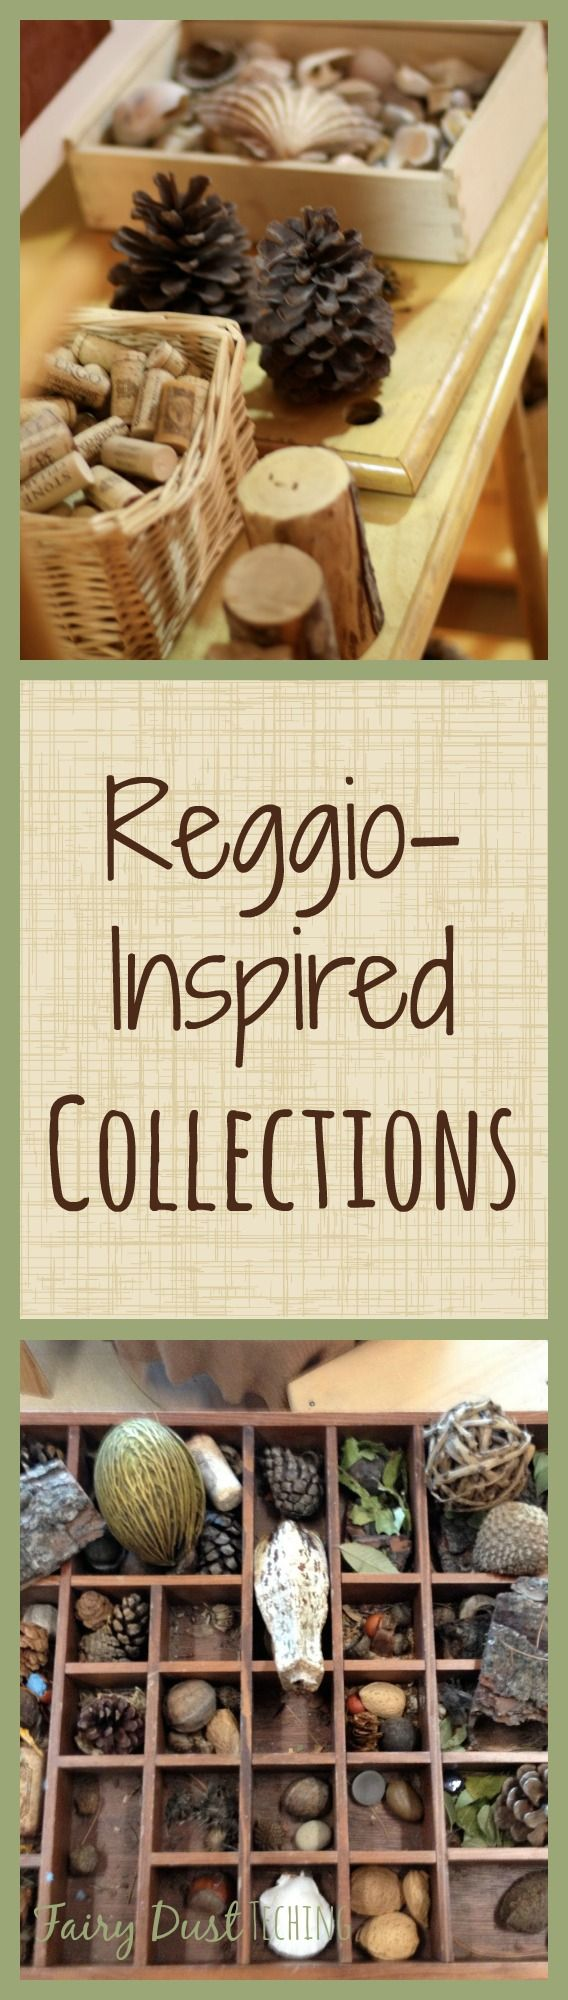 Beautiful Reggio-Inspired Collections. See more at Fairy Dust Teaching.